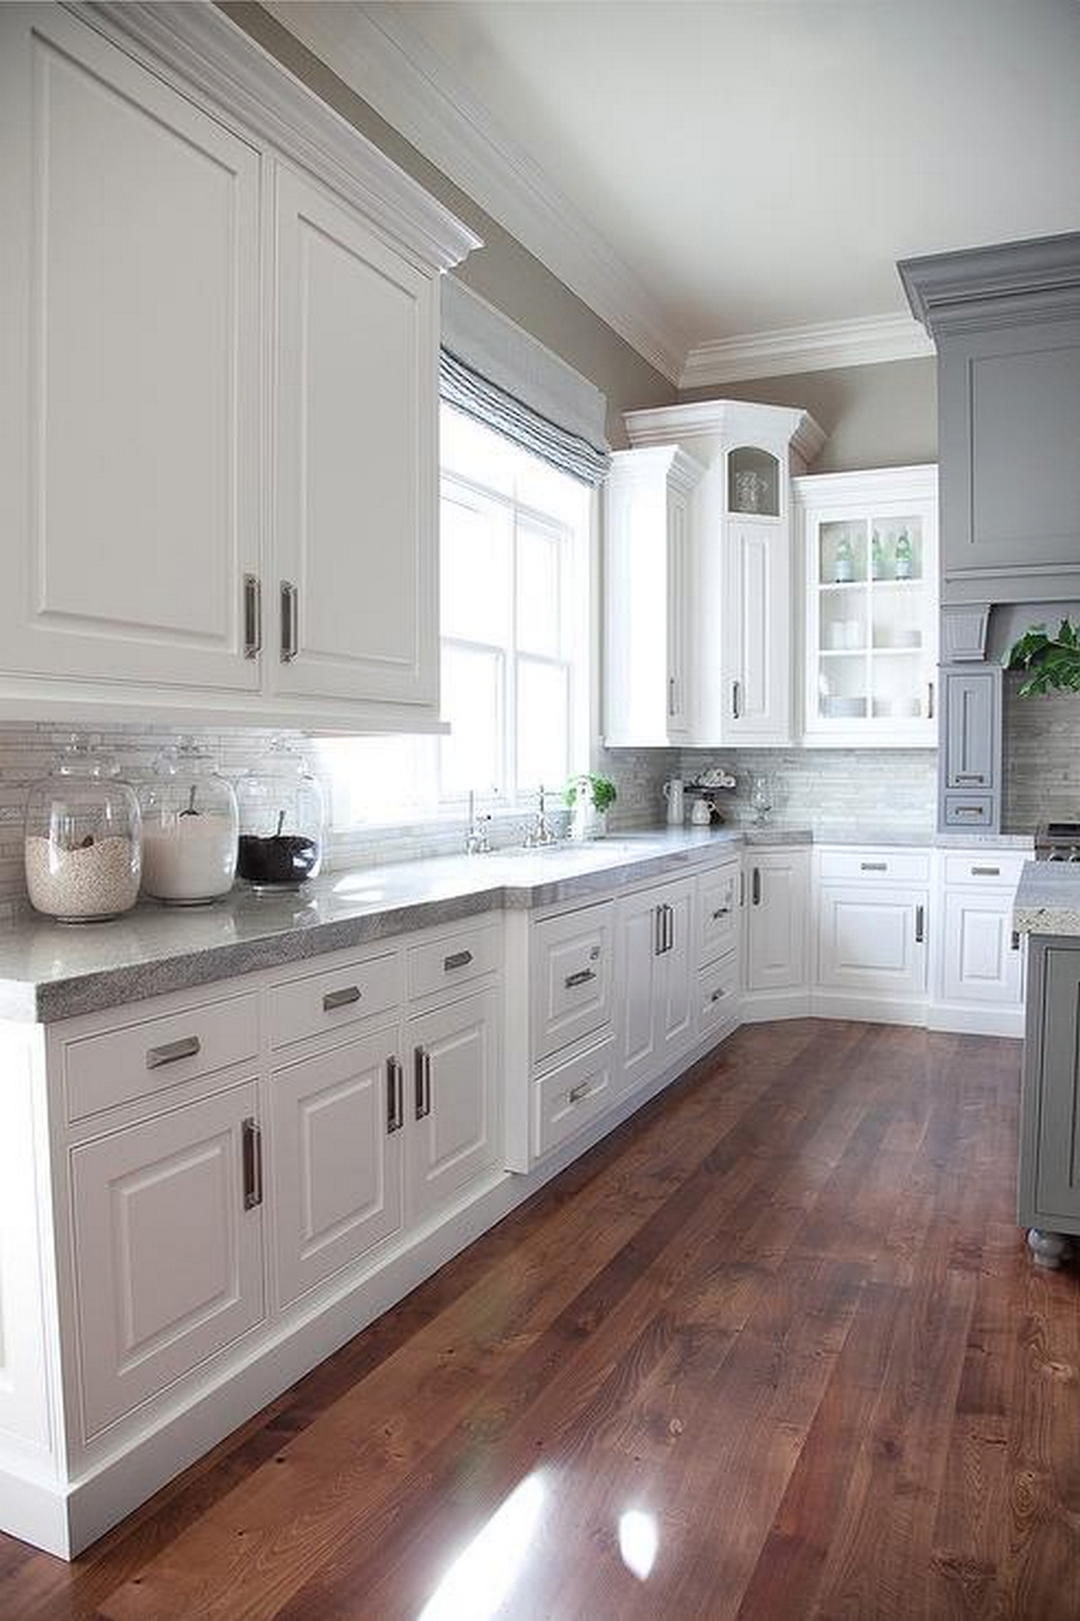 Best Kitchen Gallery: 53 Pretty White Kitchen Design Ideas Kitchen Design Kitchens And of Pictures Of Kitchens With White Cabinets on rachelxblog.com